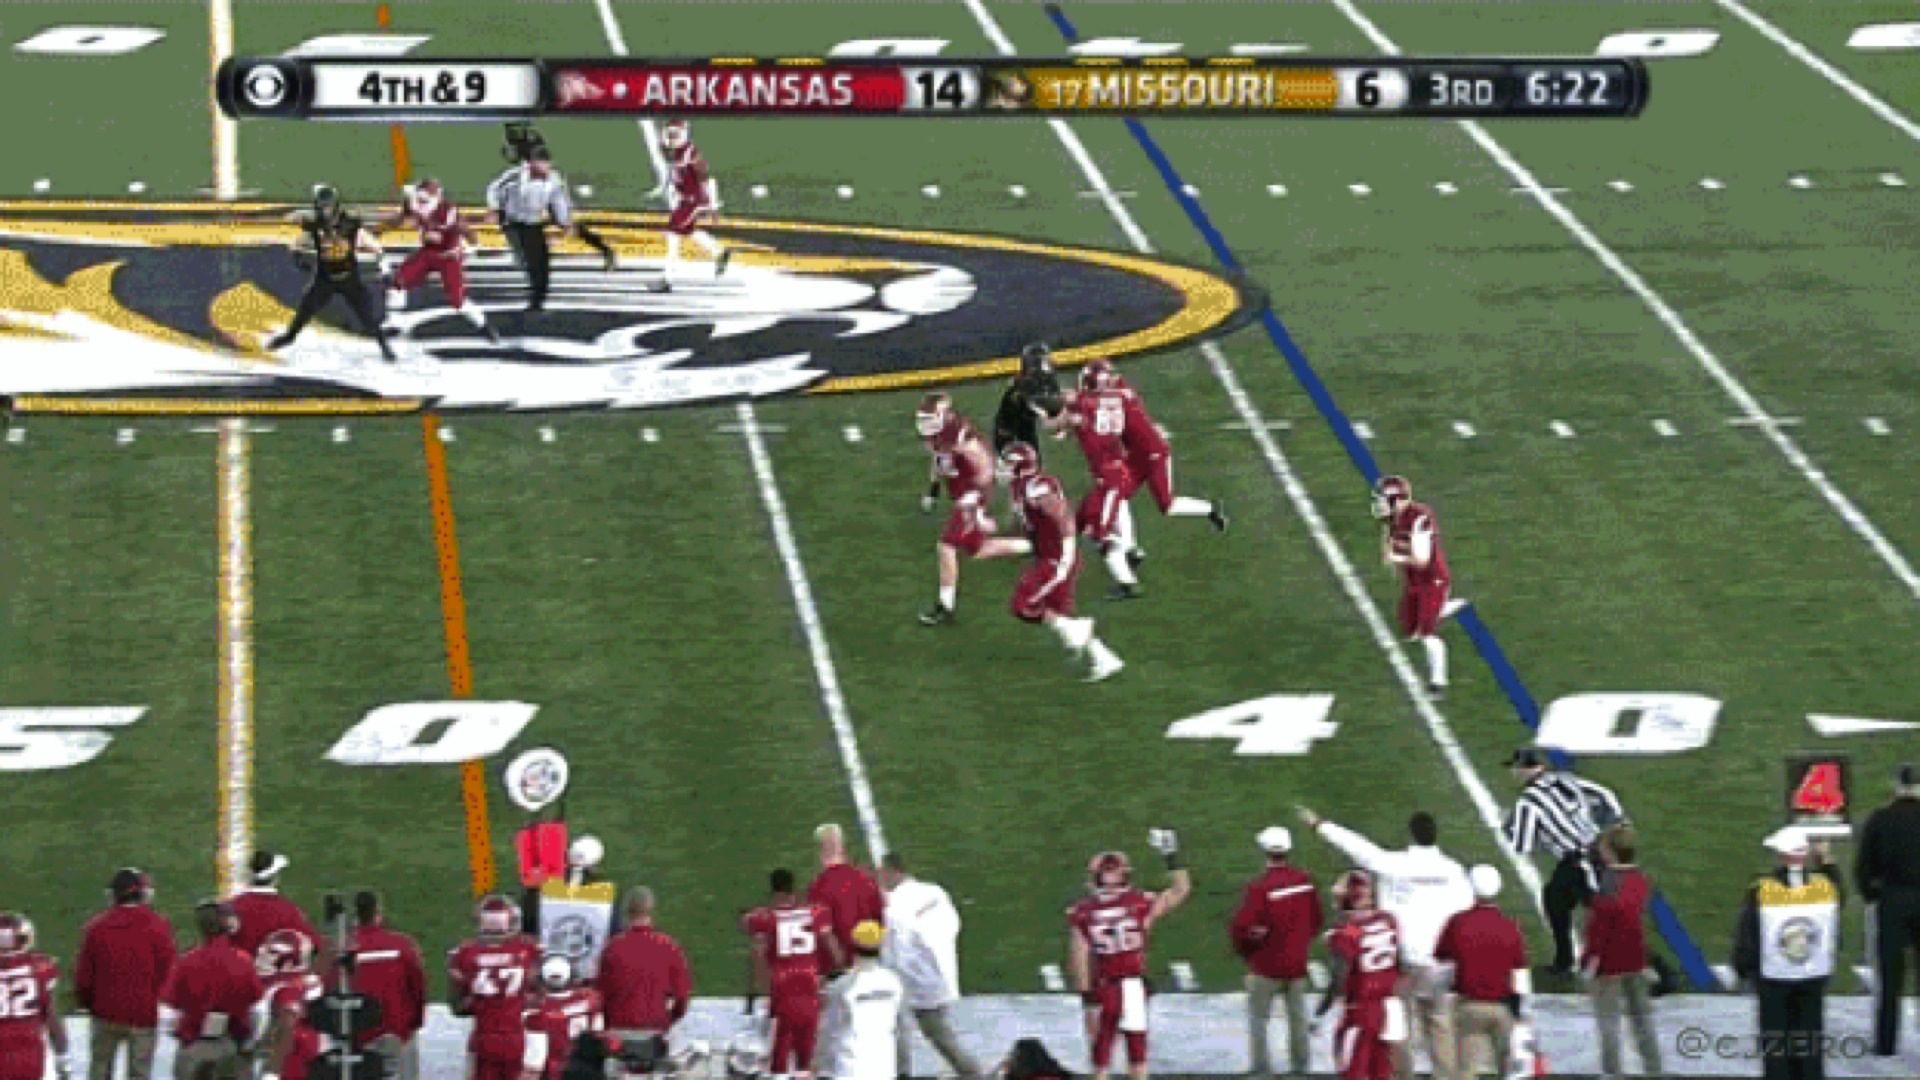 arkansas-punt-112814-FTR-VN.jpeg